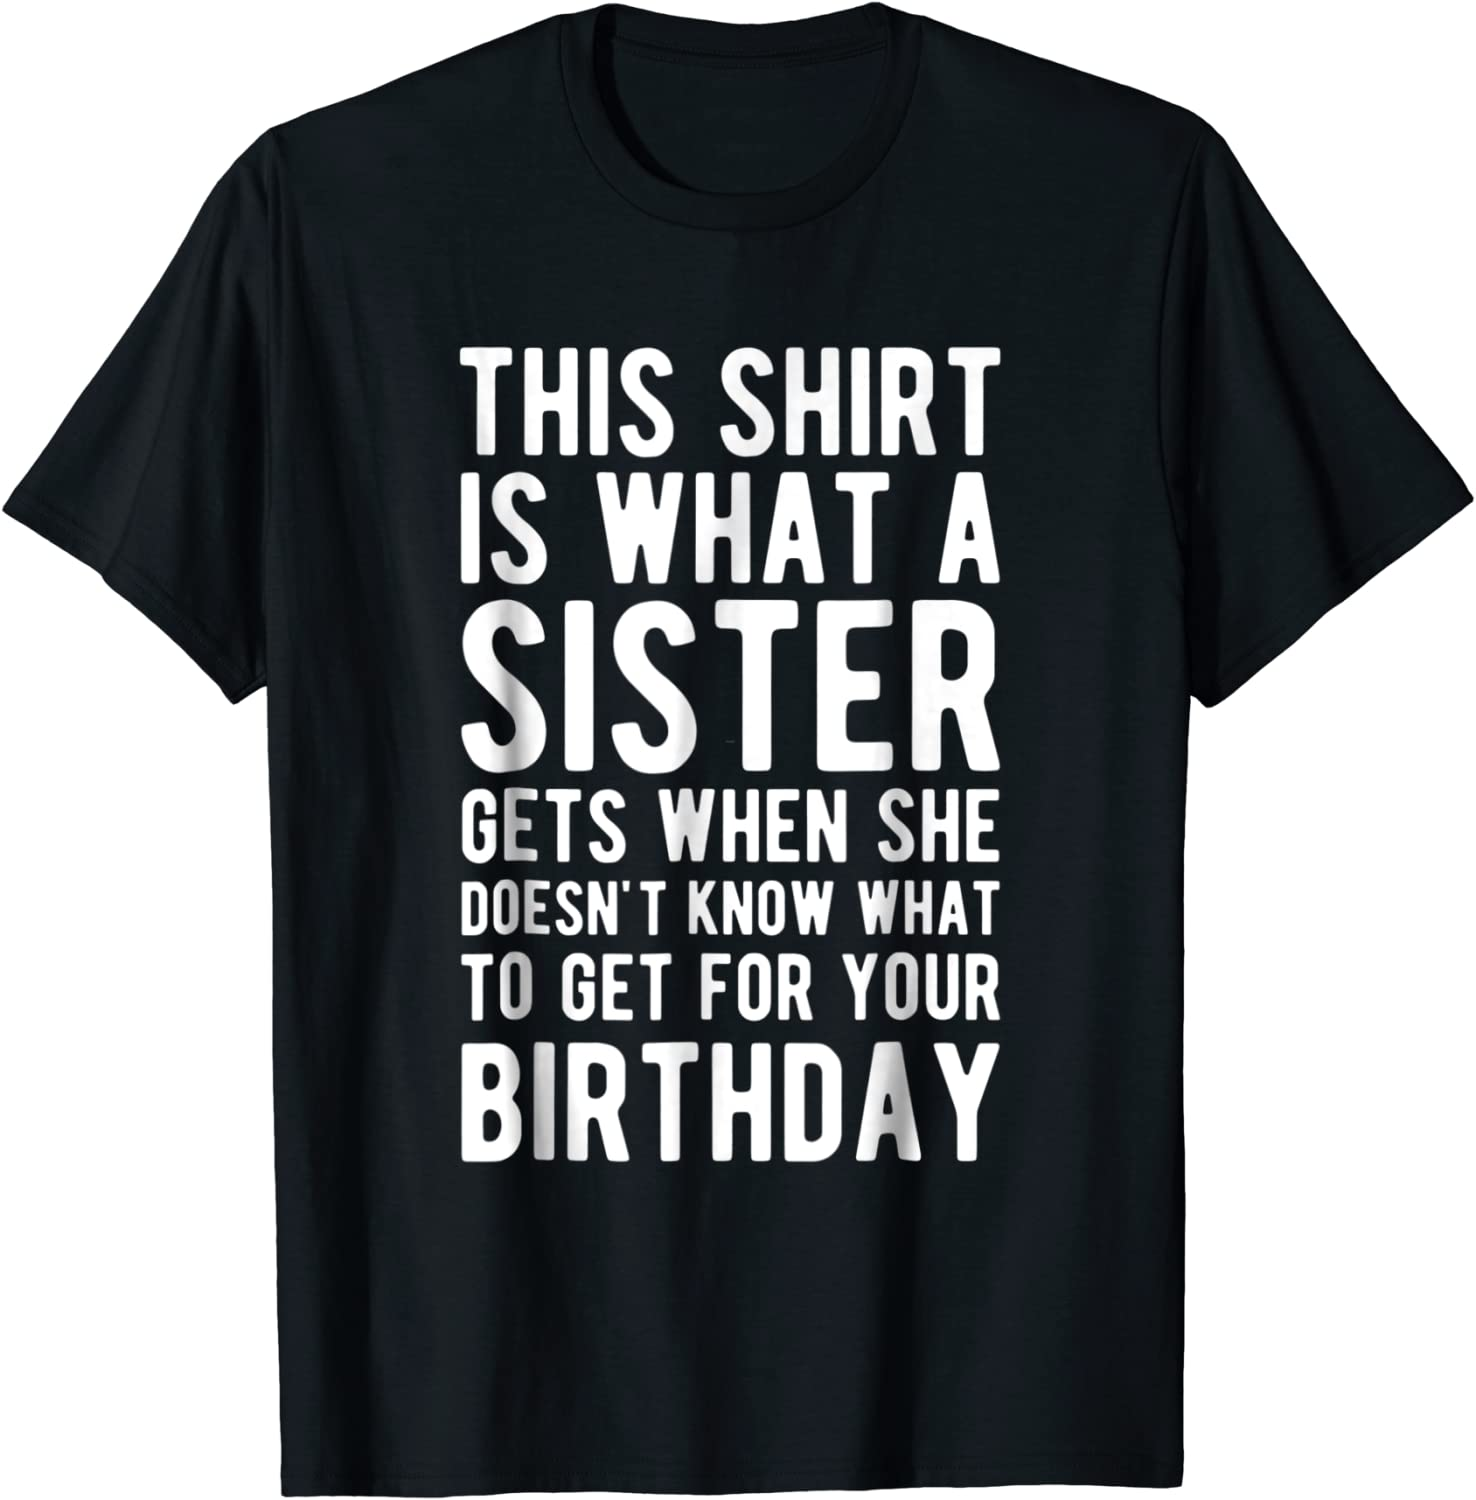 Worlds best Brother T-shirt Gift for Brother Tee Shirt Birthday Gift Tee Shirt